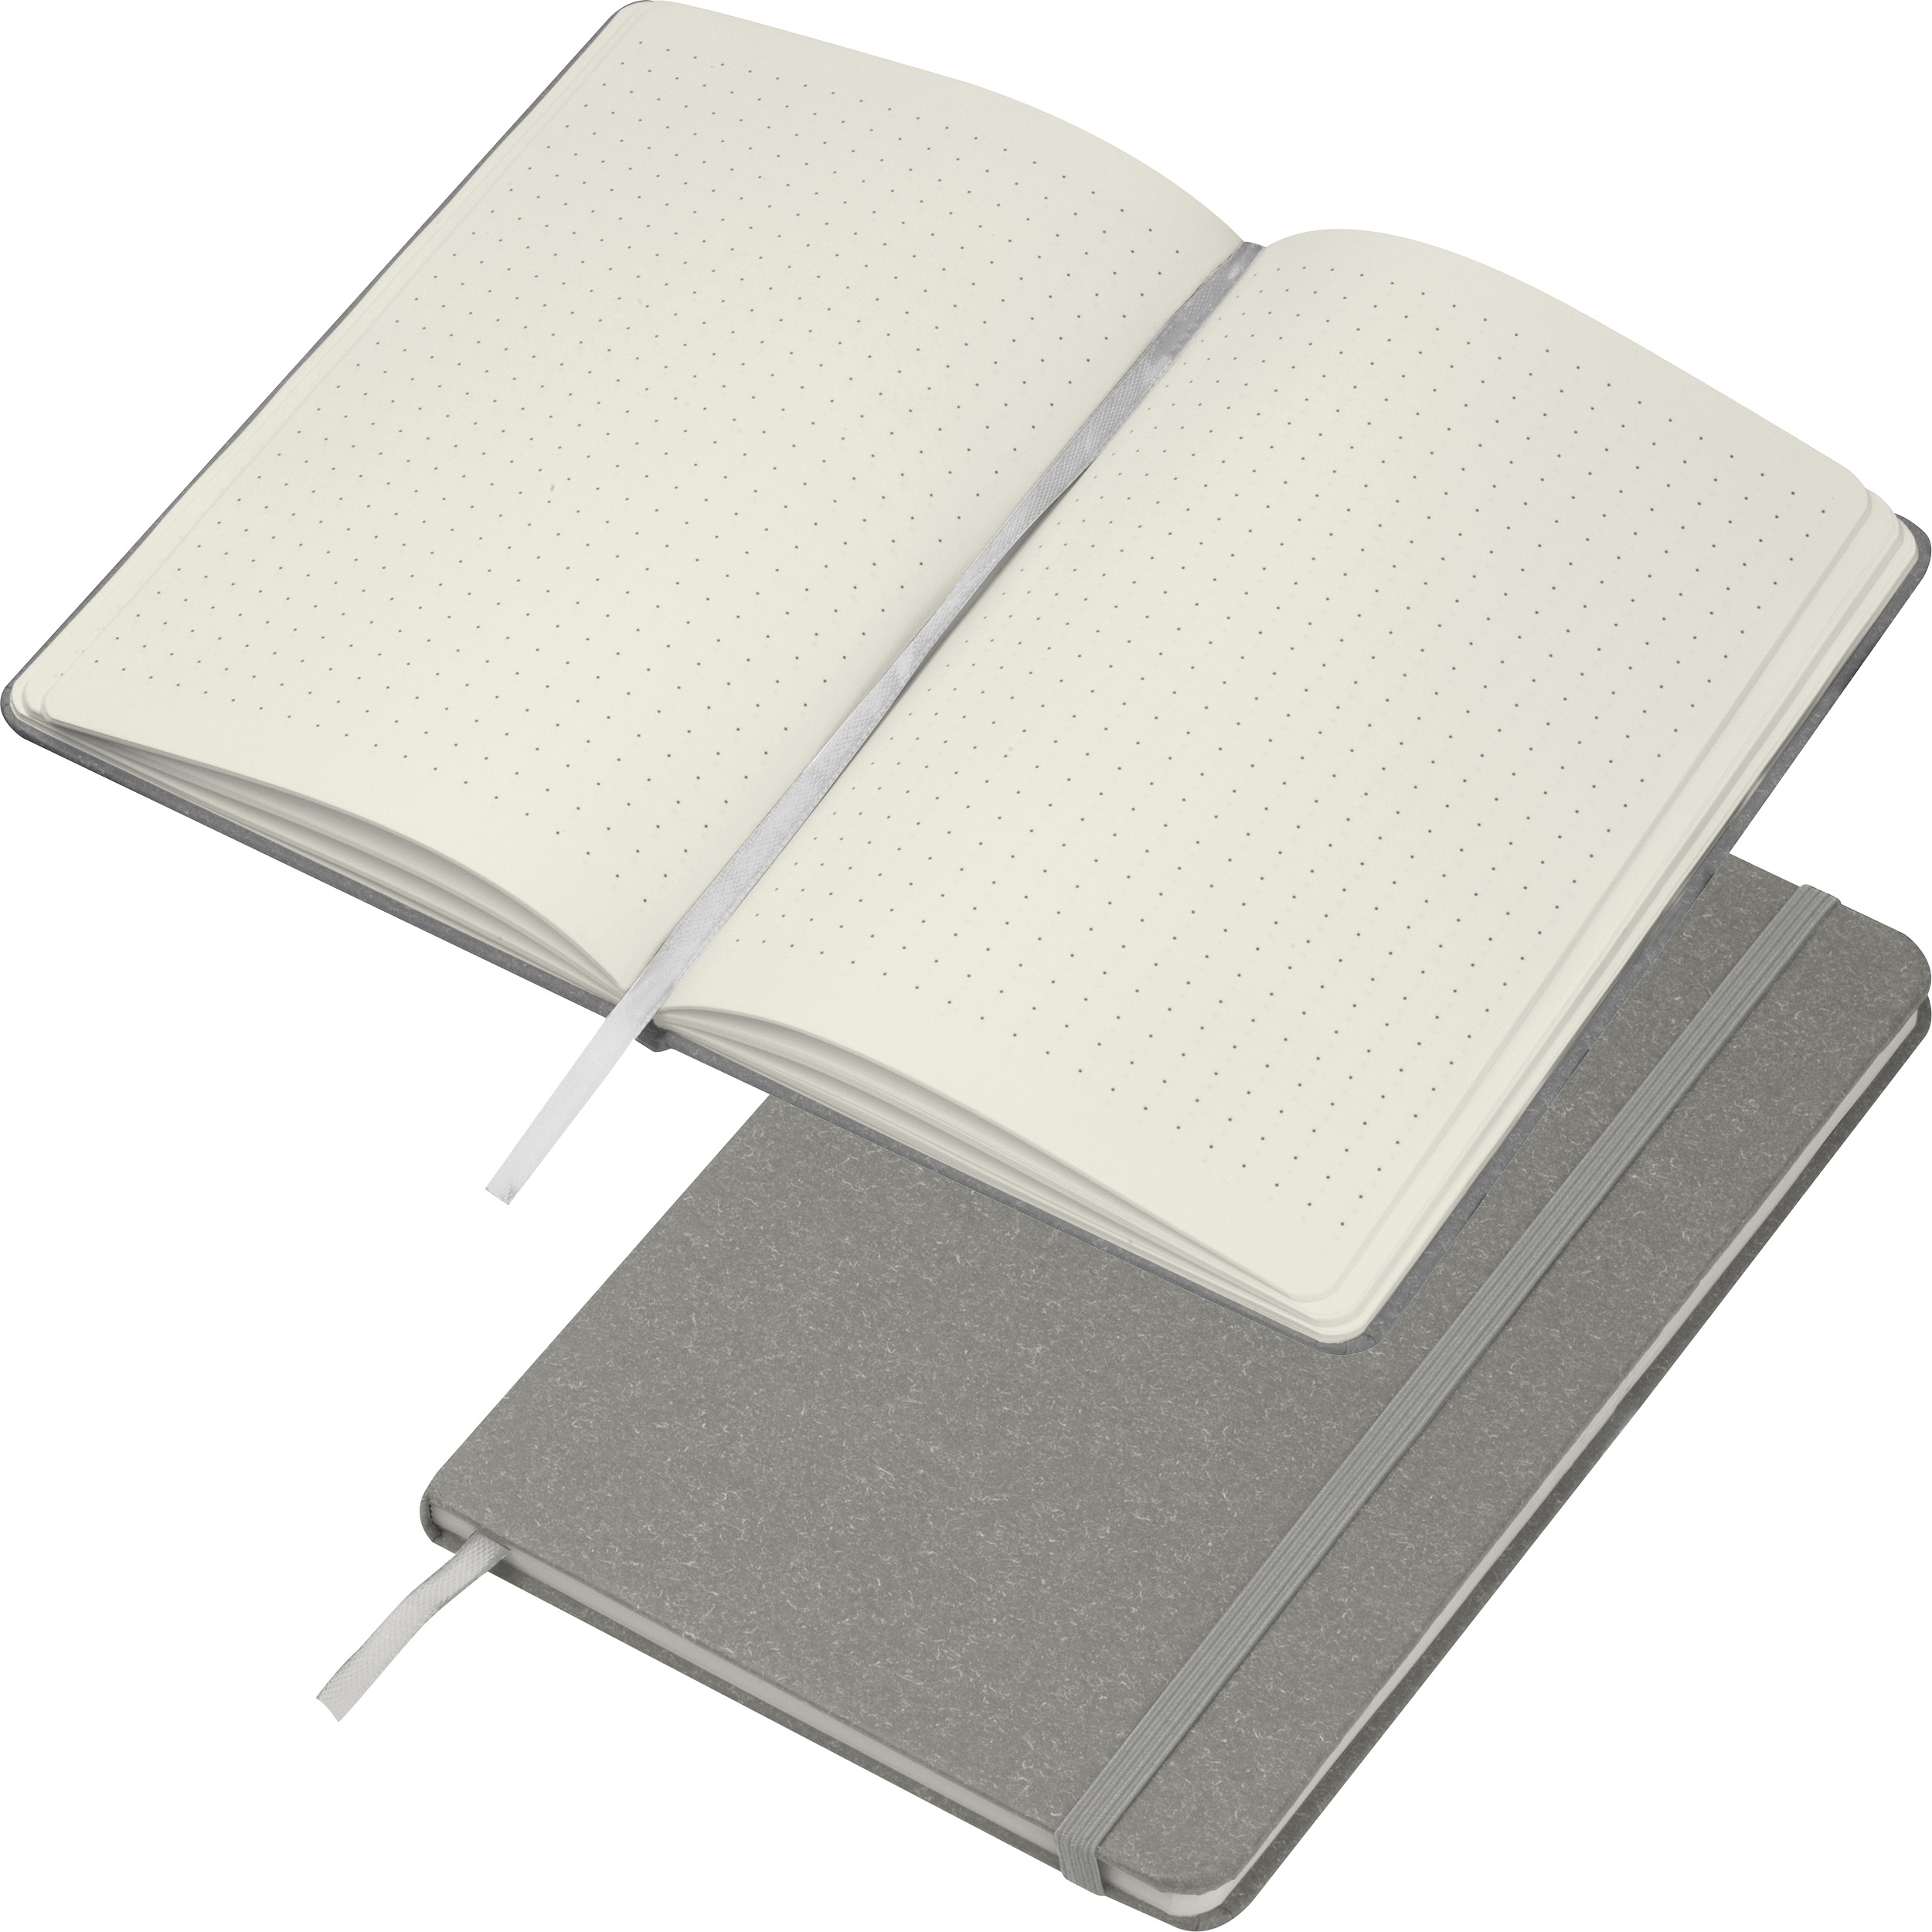 A5 recycled paper book